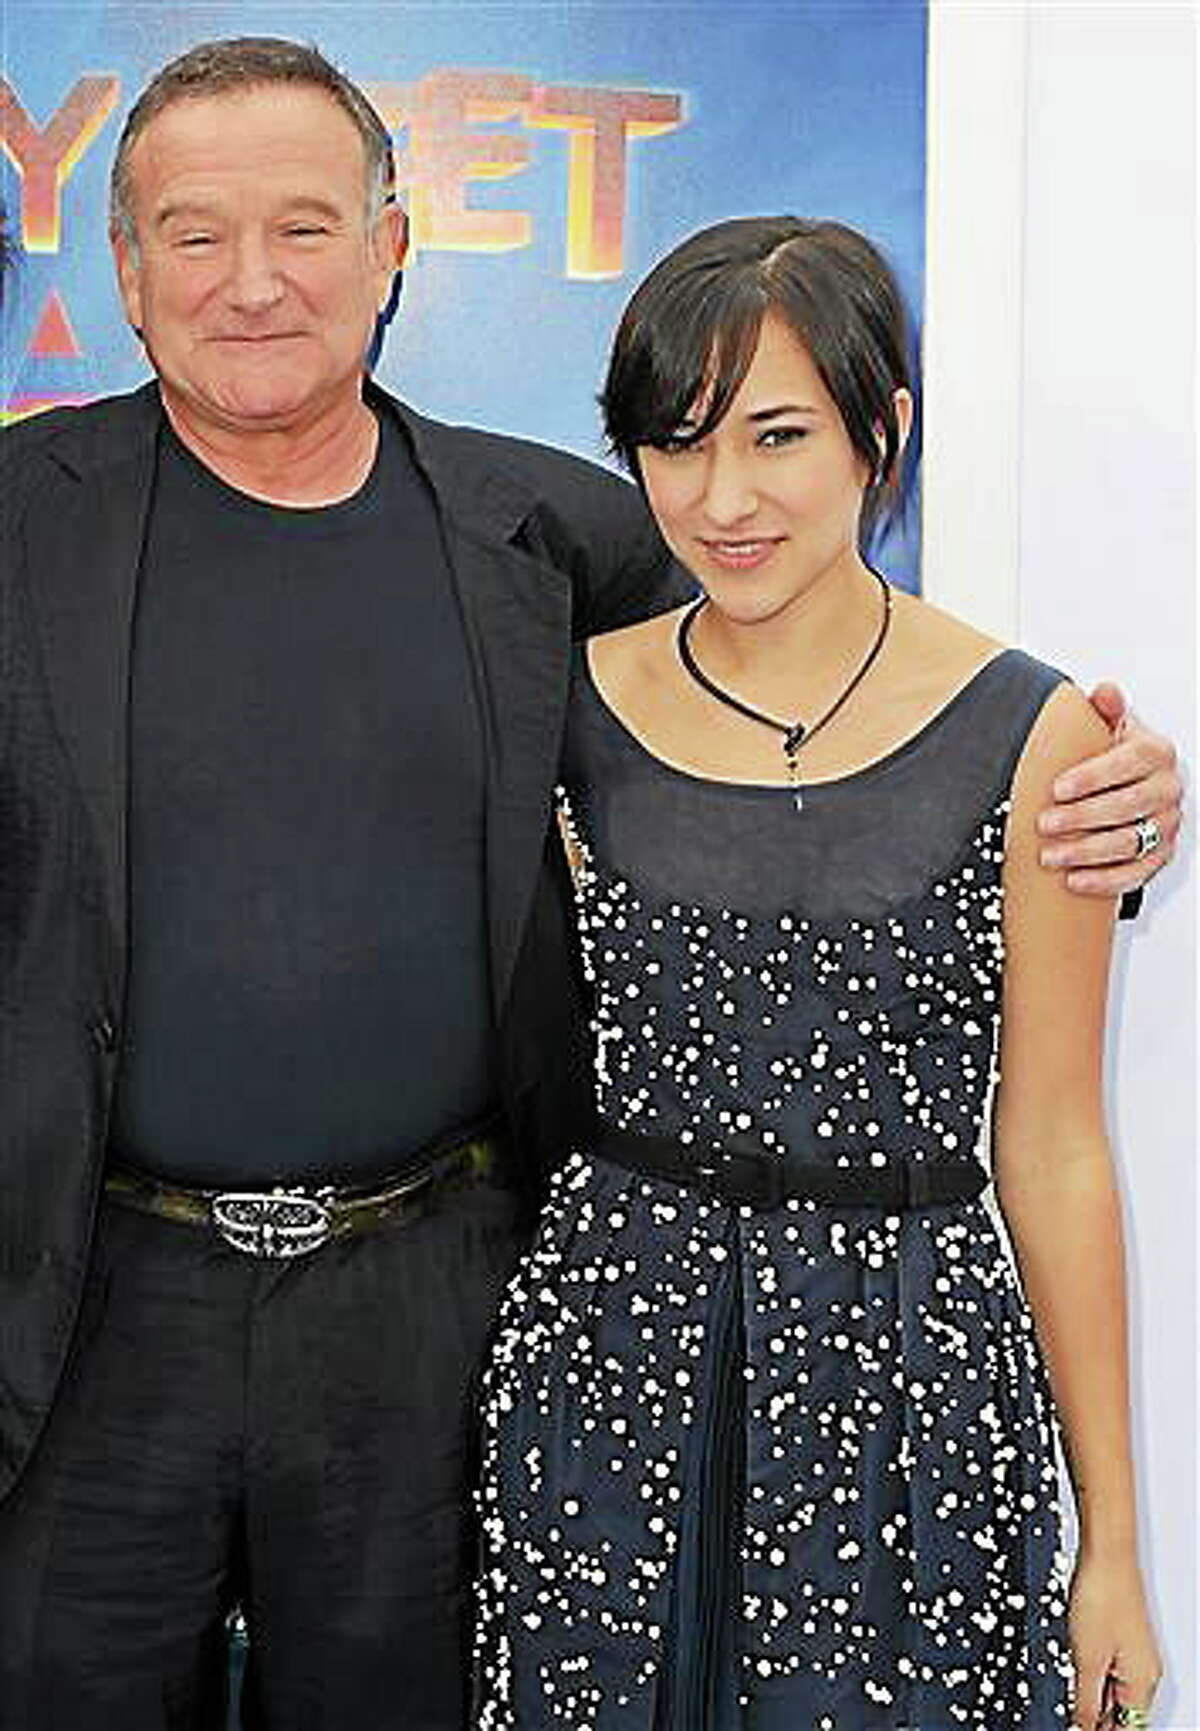 """This Nov. 13, 2011, file photo shows actor Robin Williams, left, and his daughter, Zelda, at the premiere of """"Happy Feet Two"""" in Los Angeles. AP Photo/Katy Winn, File"""